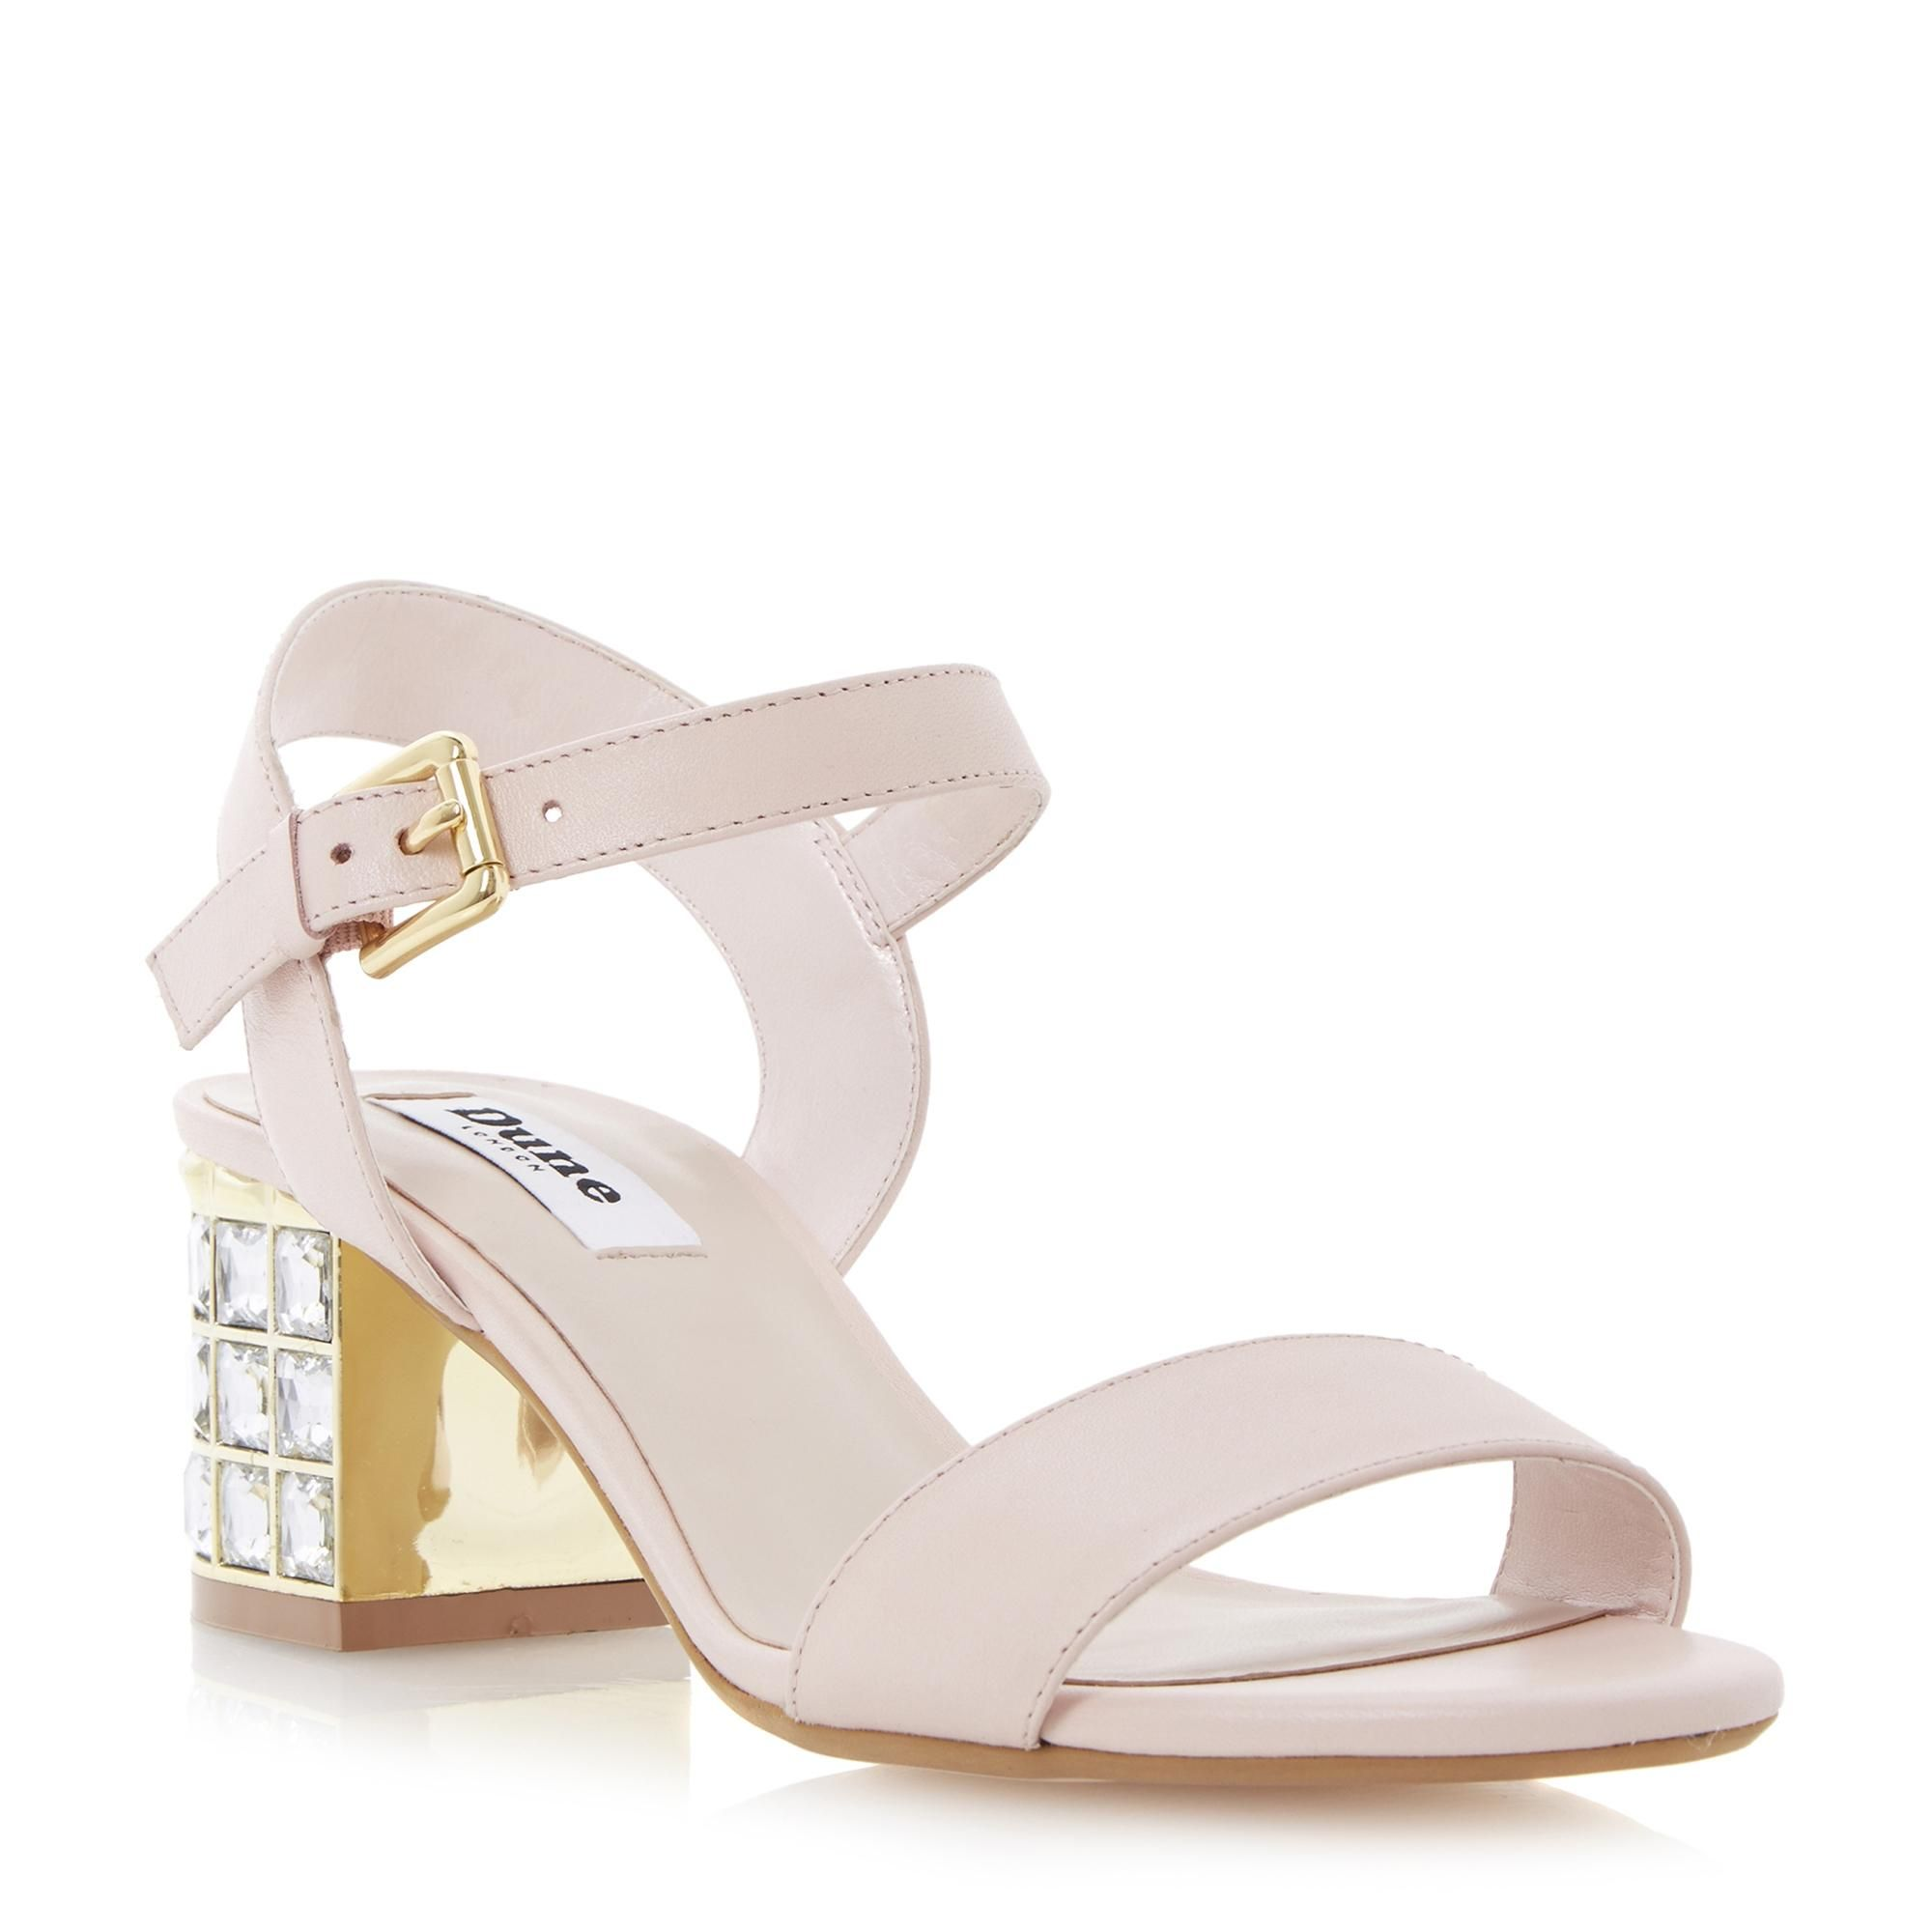 DUNE LADIES HARAH - Jewelled Block Heel Sandal pink | Dune Shoes Online